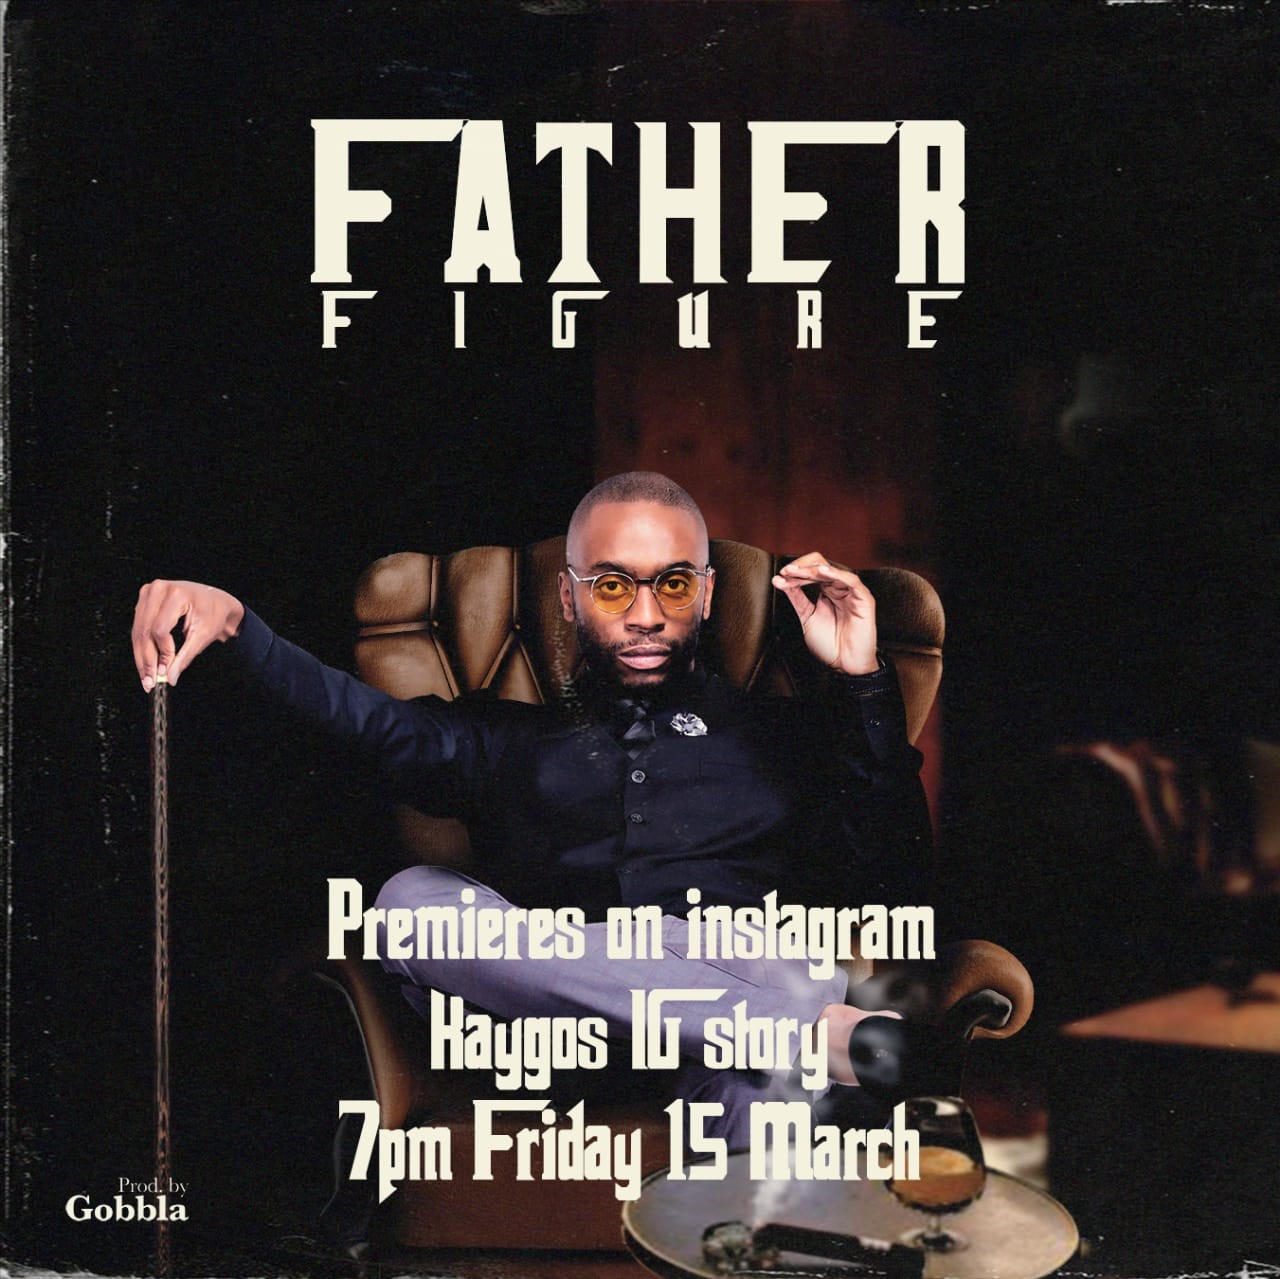 "DJ KAYGO SET TO MAKE SOCIAL MEDIA HISTORY WITH VISUALS FOR STREET BANGER ""FATHER FIGURE"" FEATURING GEMINI MAJOR, REASON AND KID X hype"